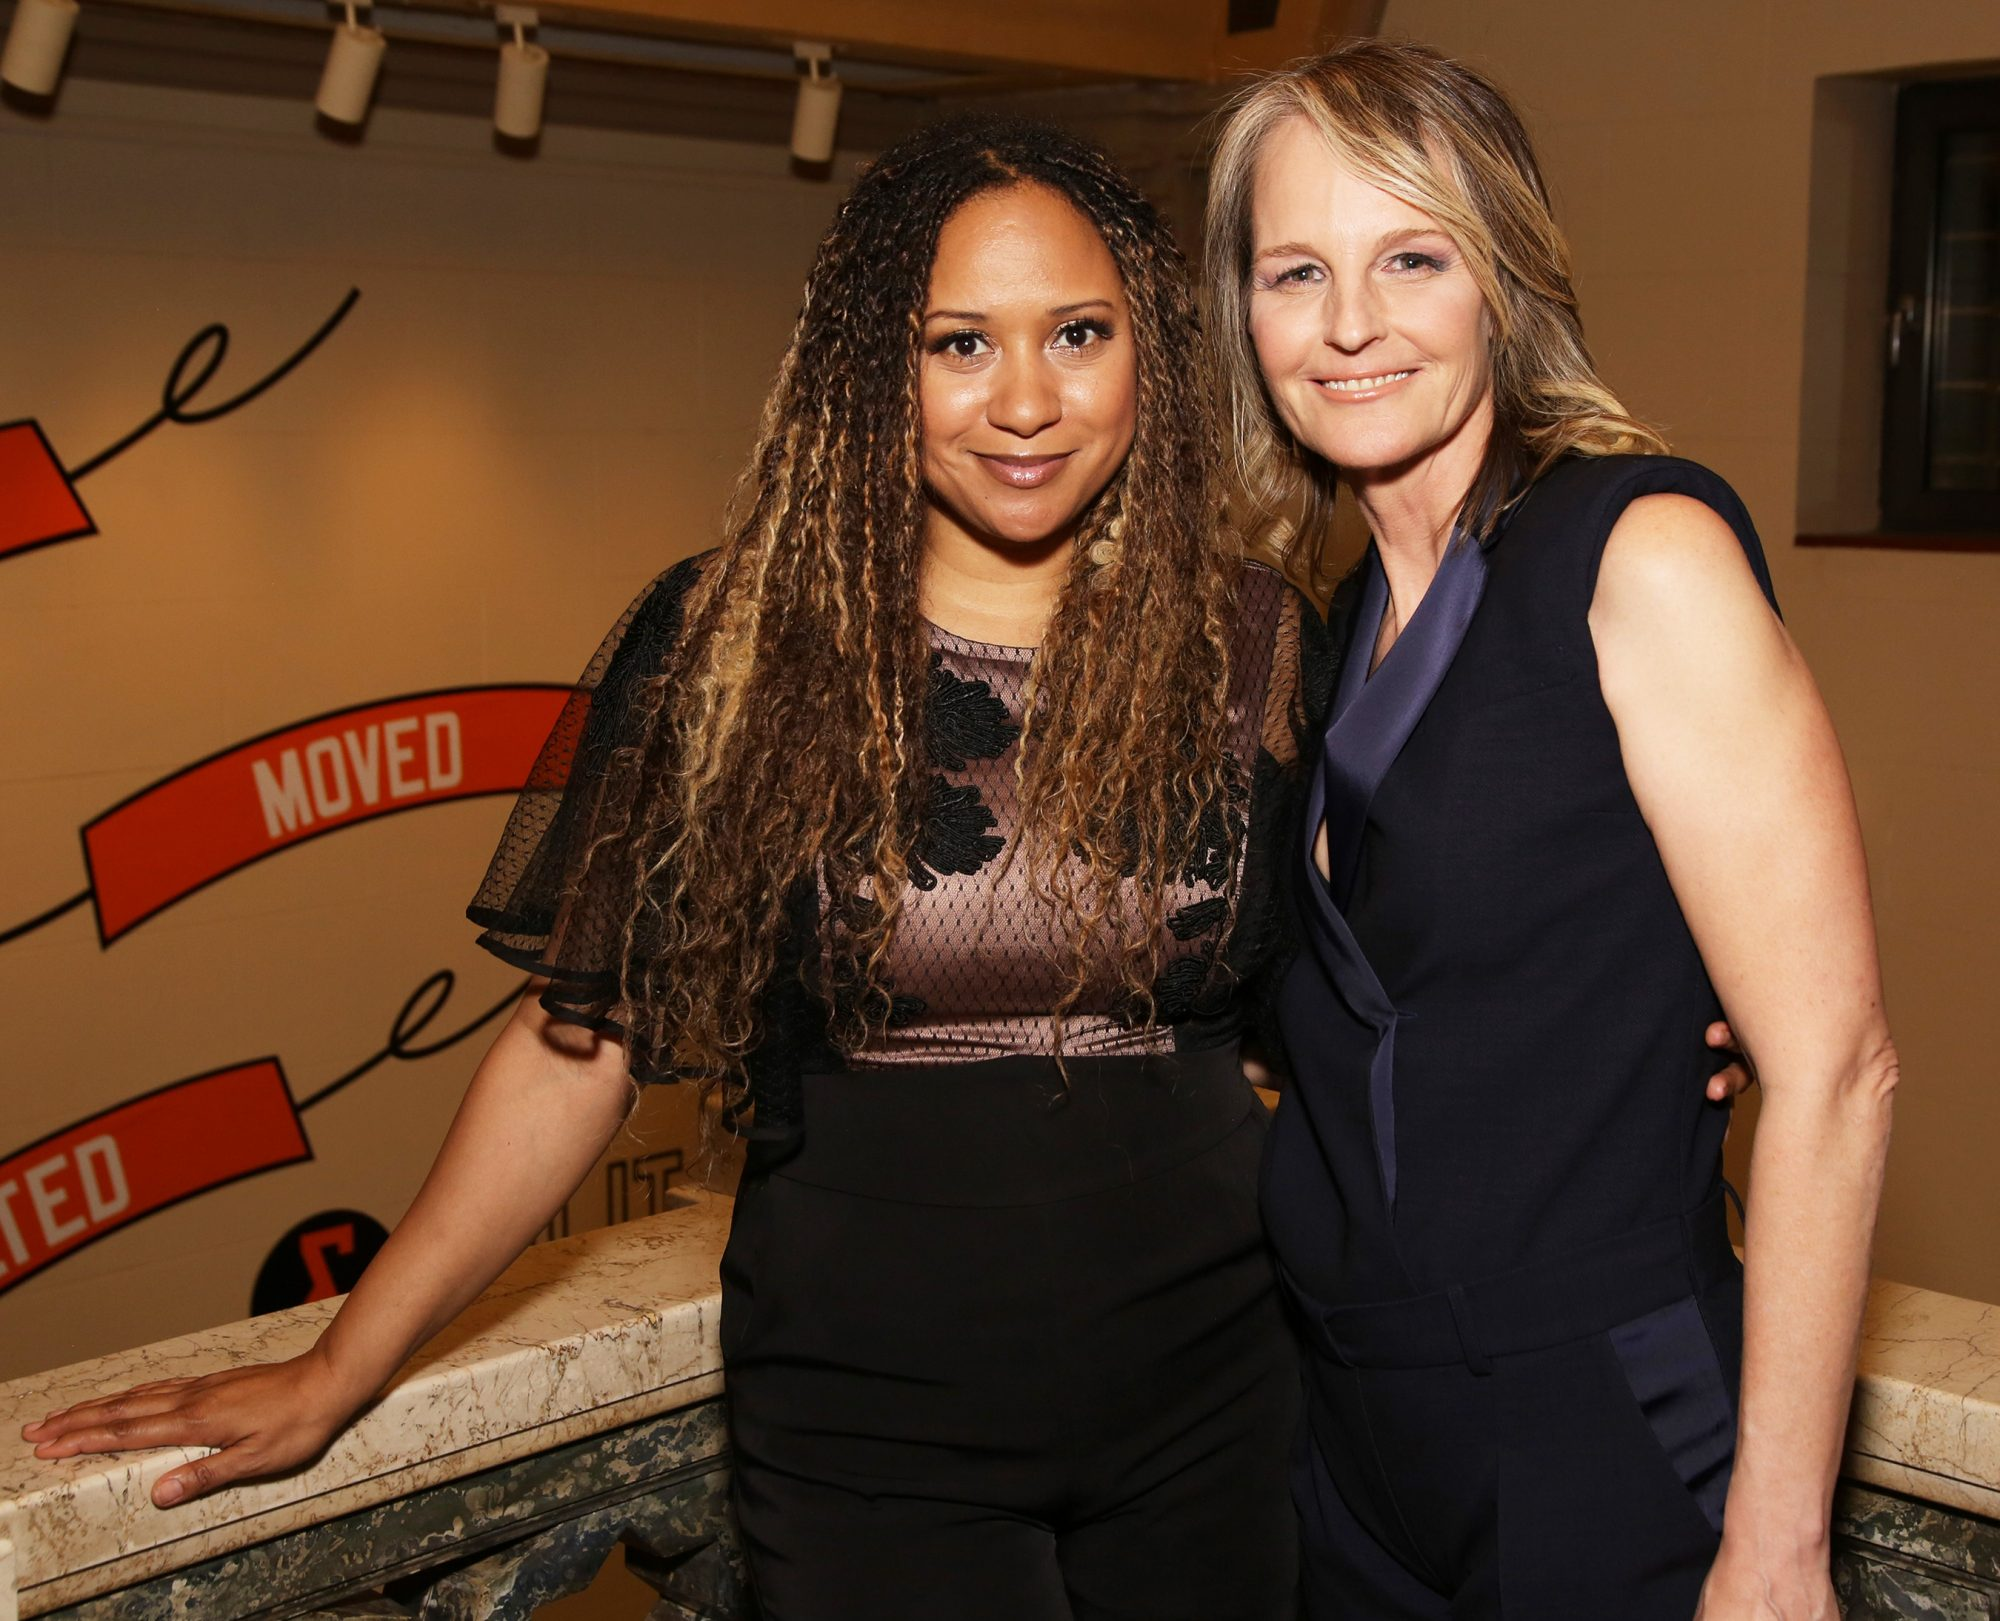 Tracie Toms and Helen Hunt